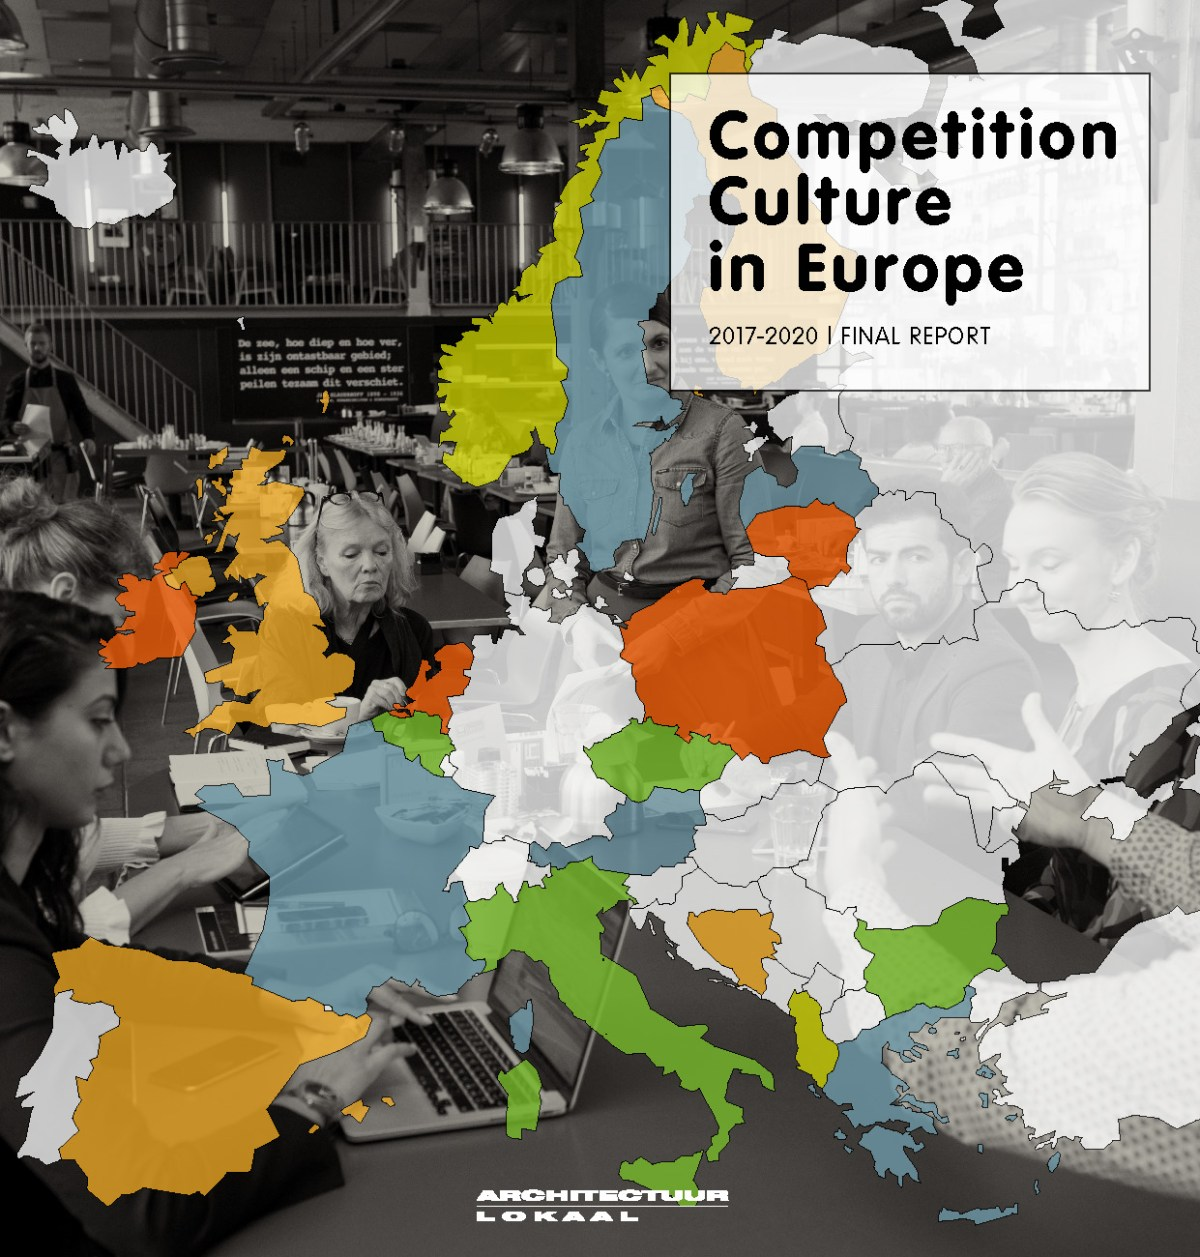 Competition Culture in Europe 2017-2020: Final Report